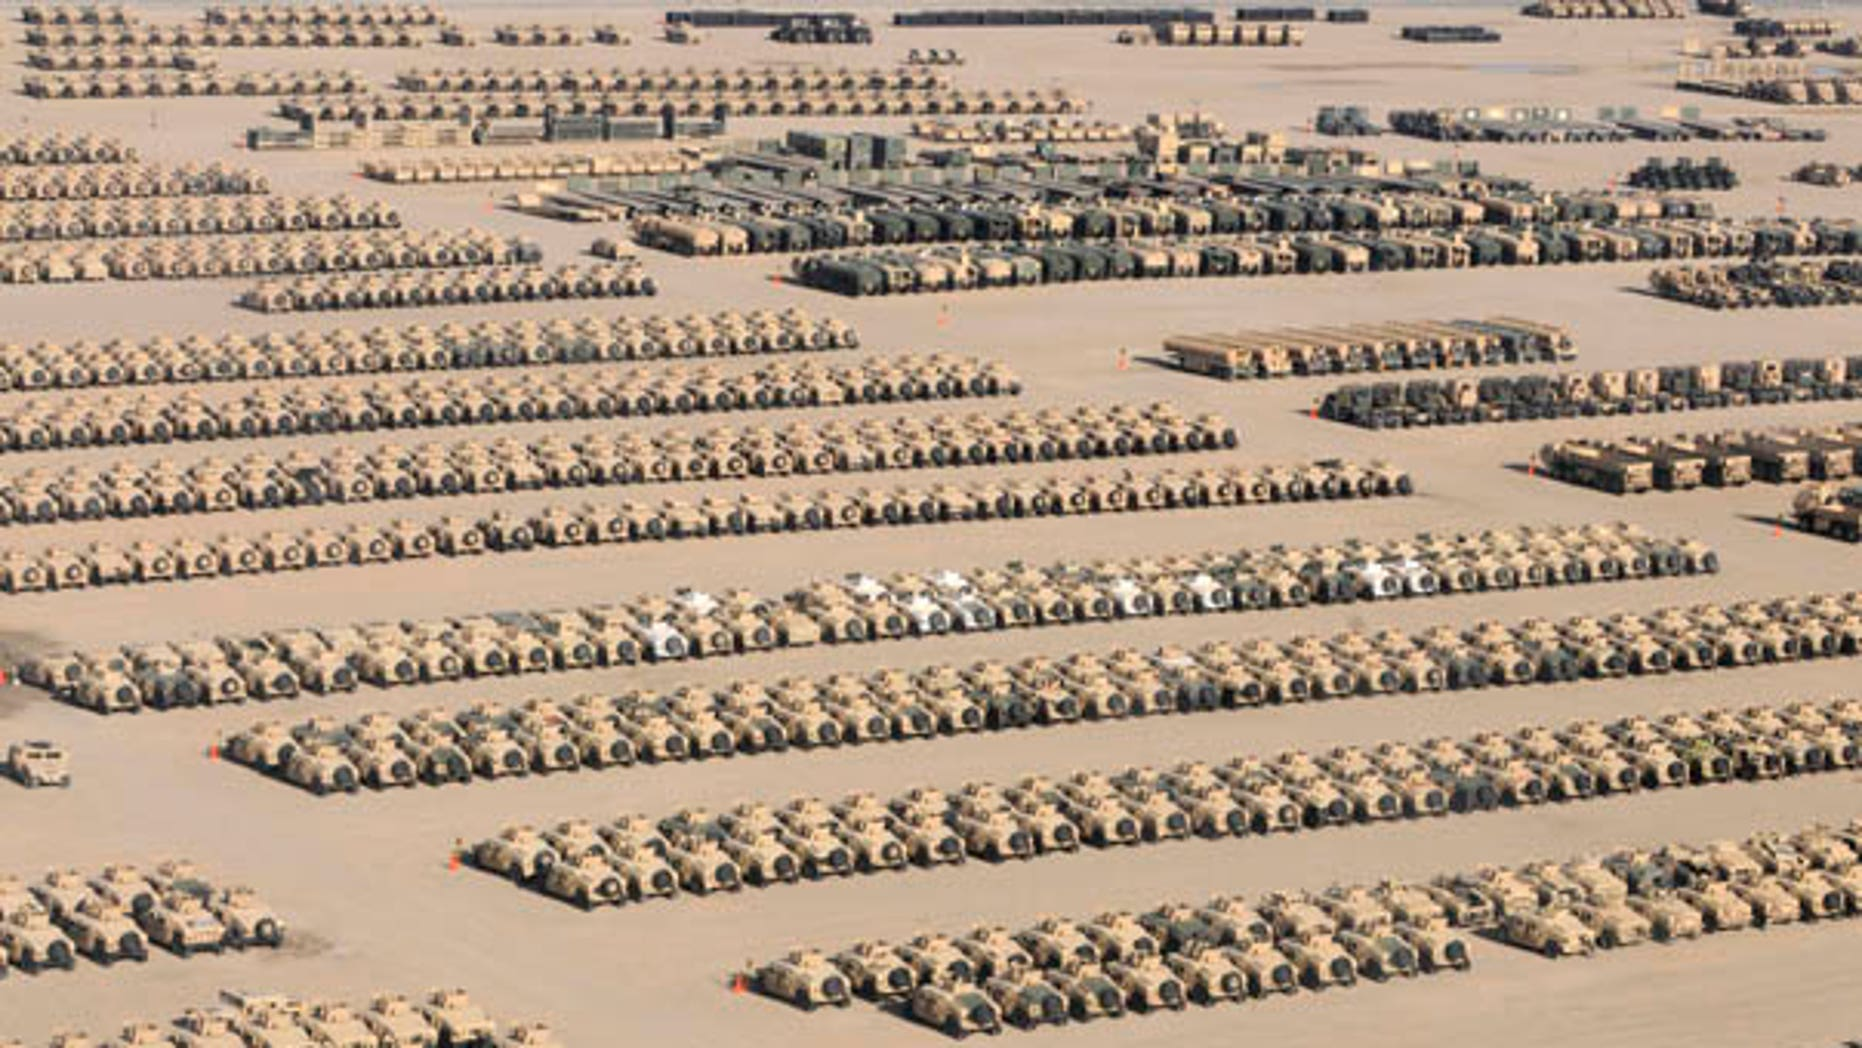 U.S. military equipment like this will have to be removed from Iraq over the next year. (Courtesy of the Pentagon)